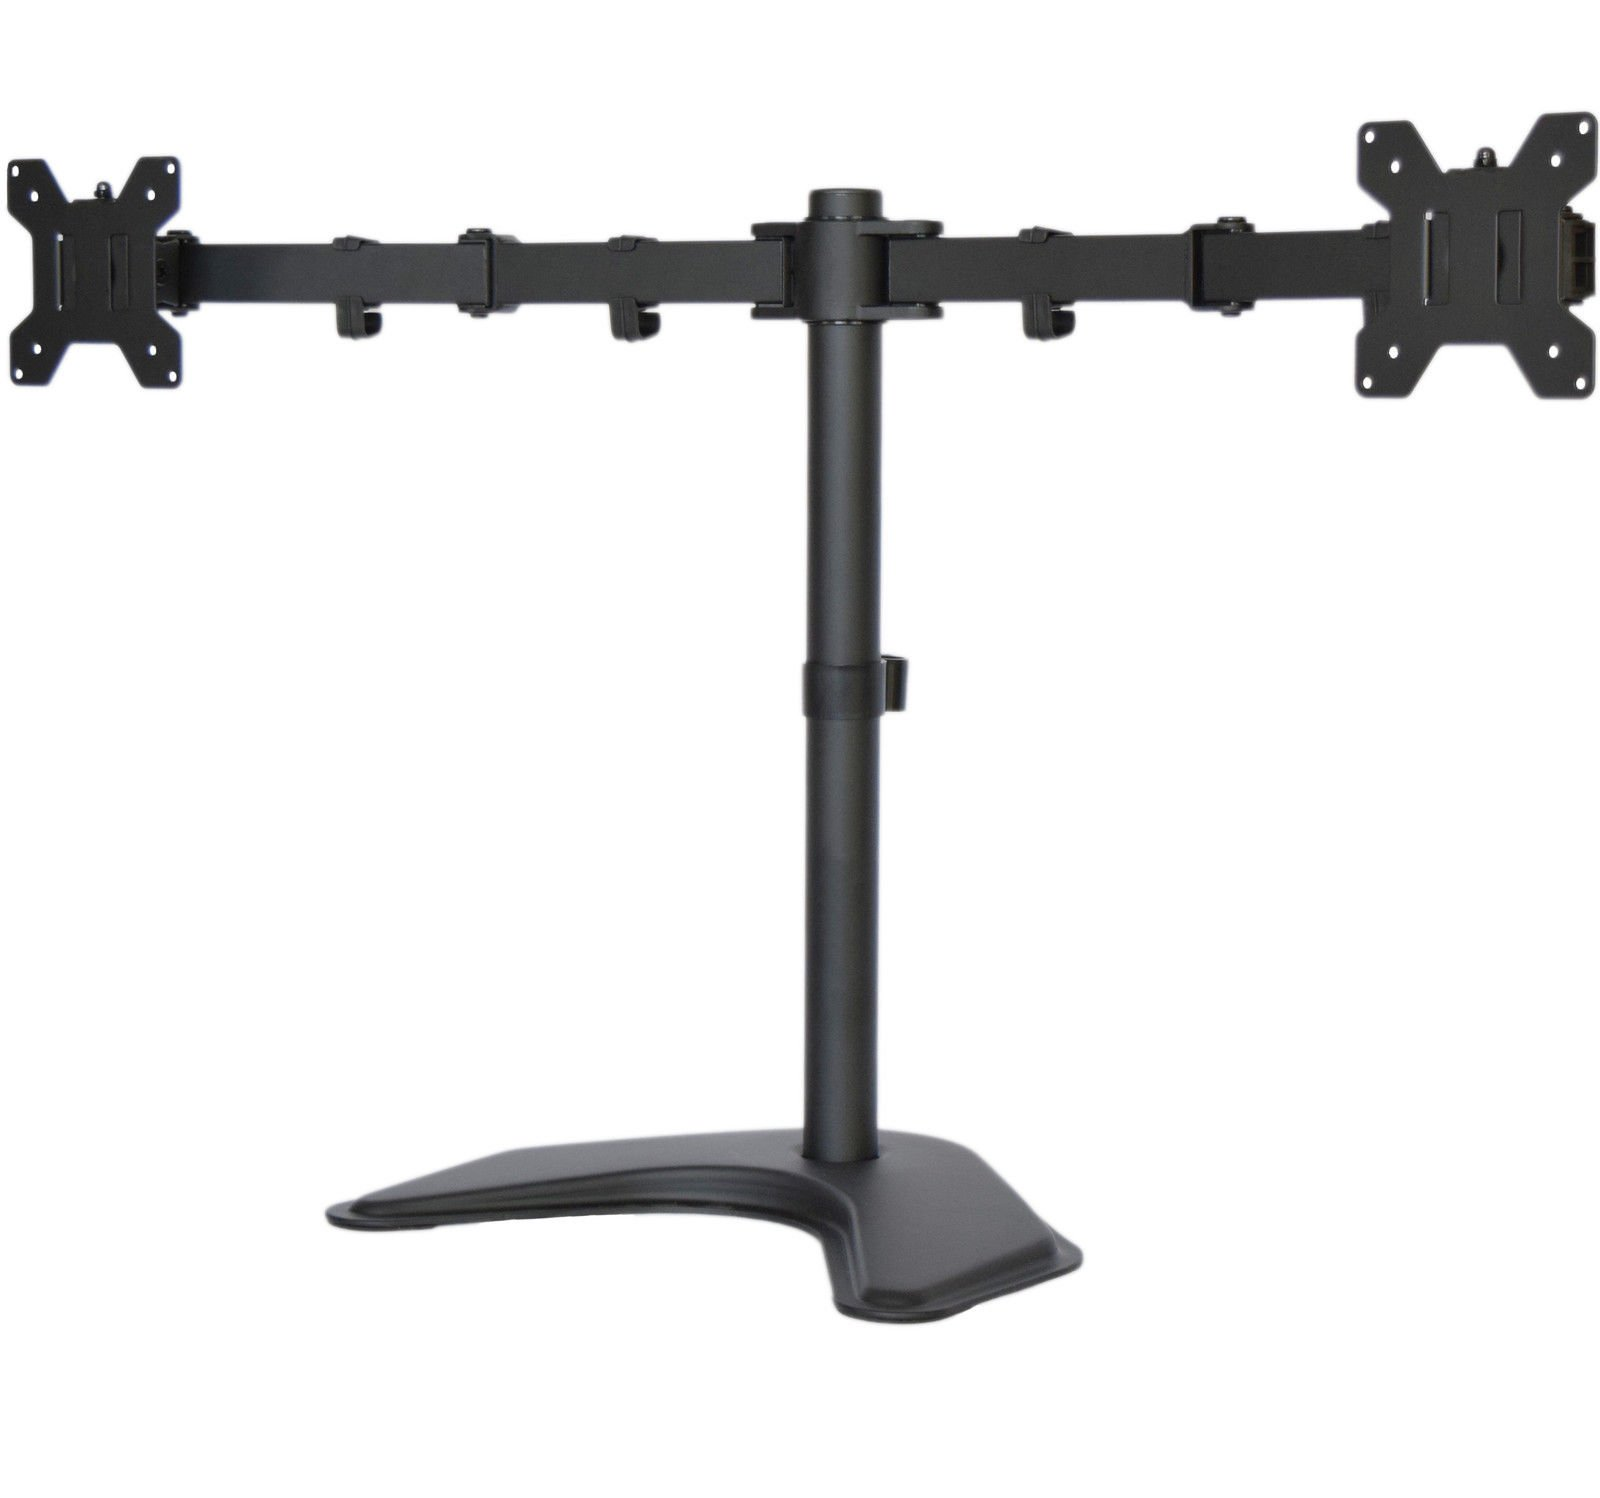 Dual LCD Monitor Desk Stand/Mount Free Standing Adjustable 2 Screens up to 27''